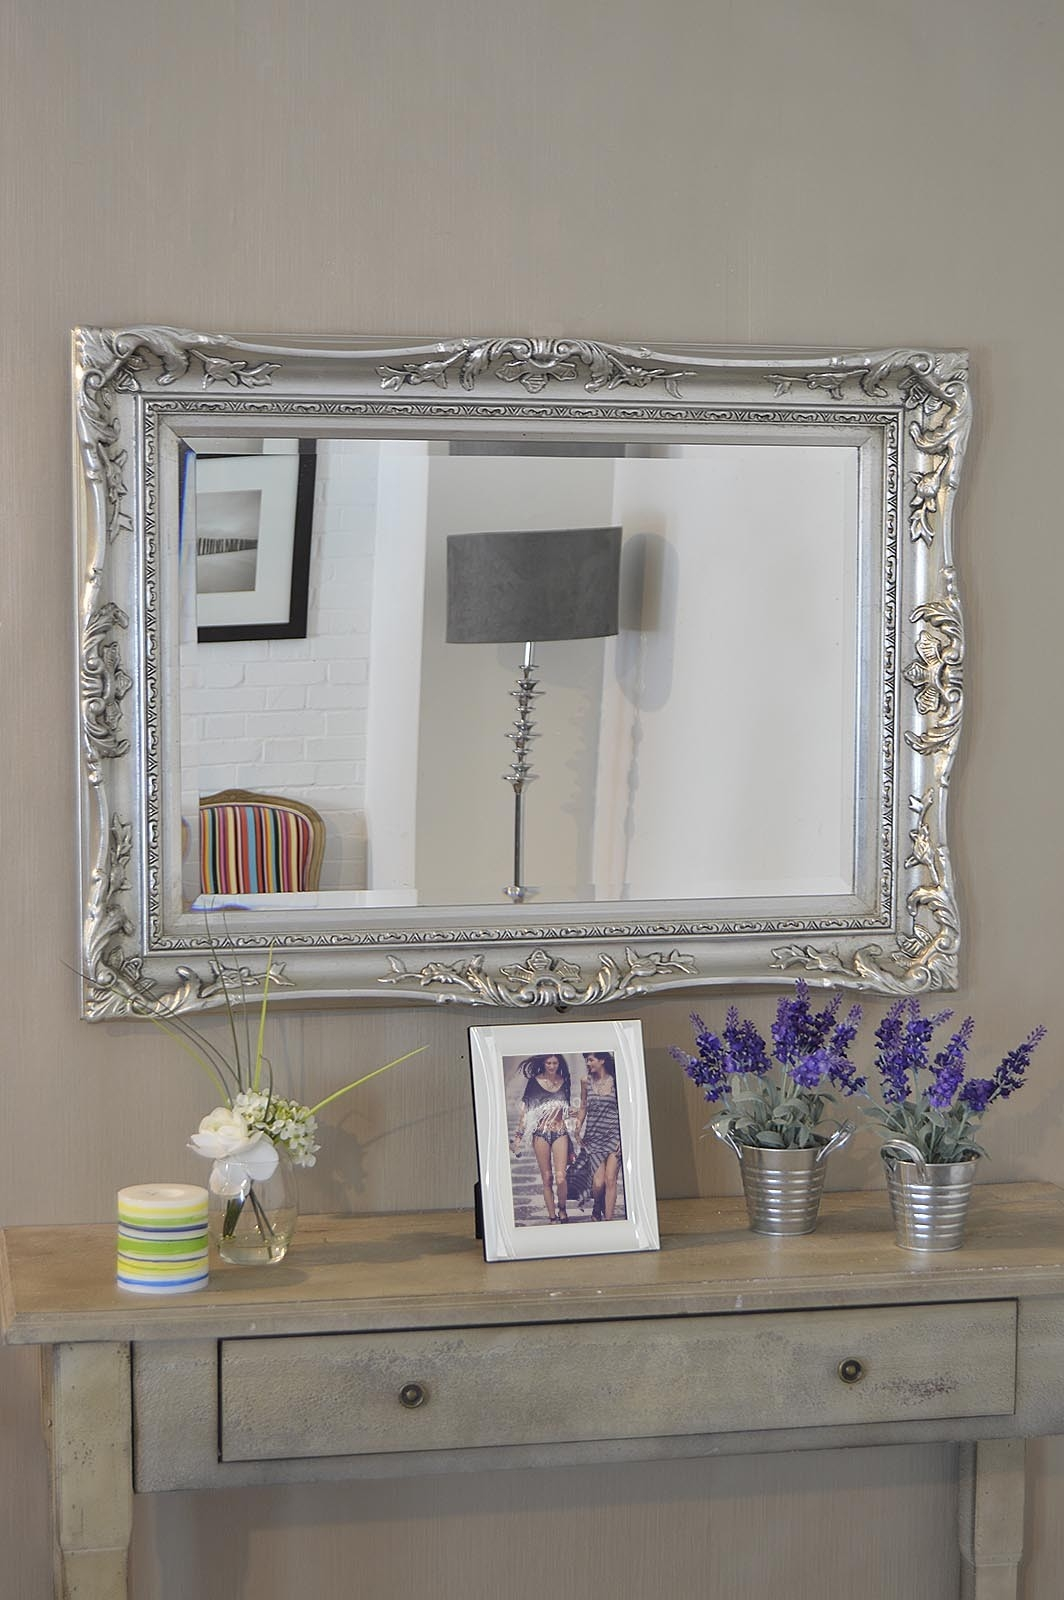 Clearance Section Category Pertaining To Silver Mirrors For Sale (Image 6 of 15)